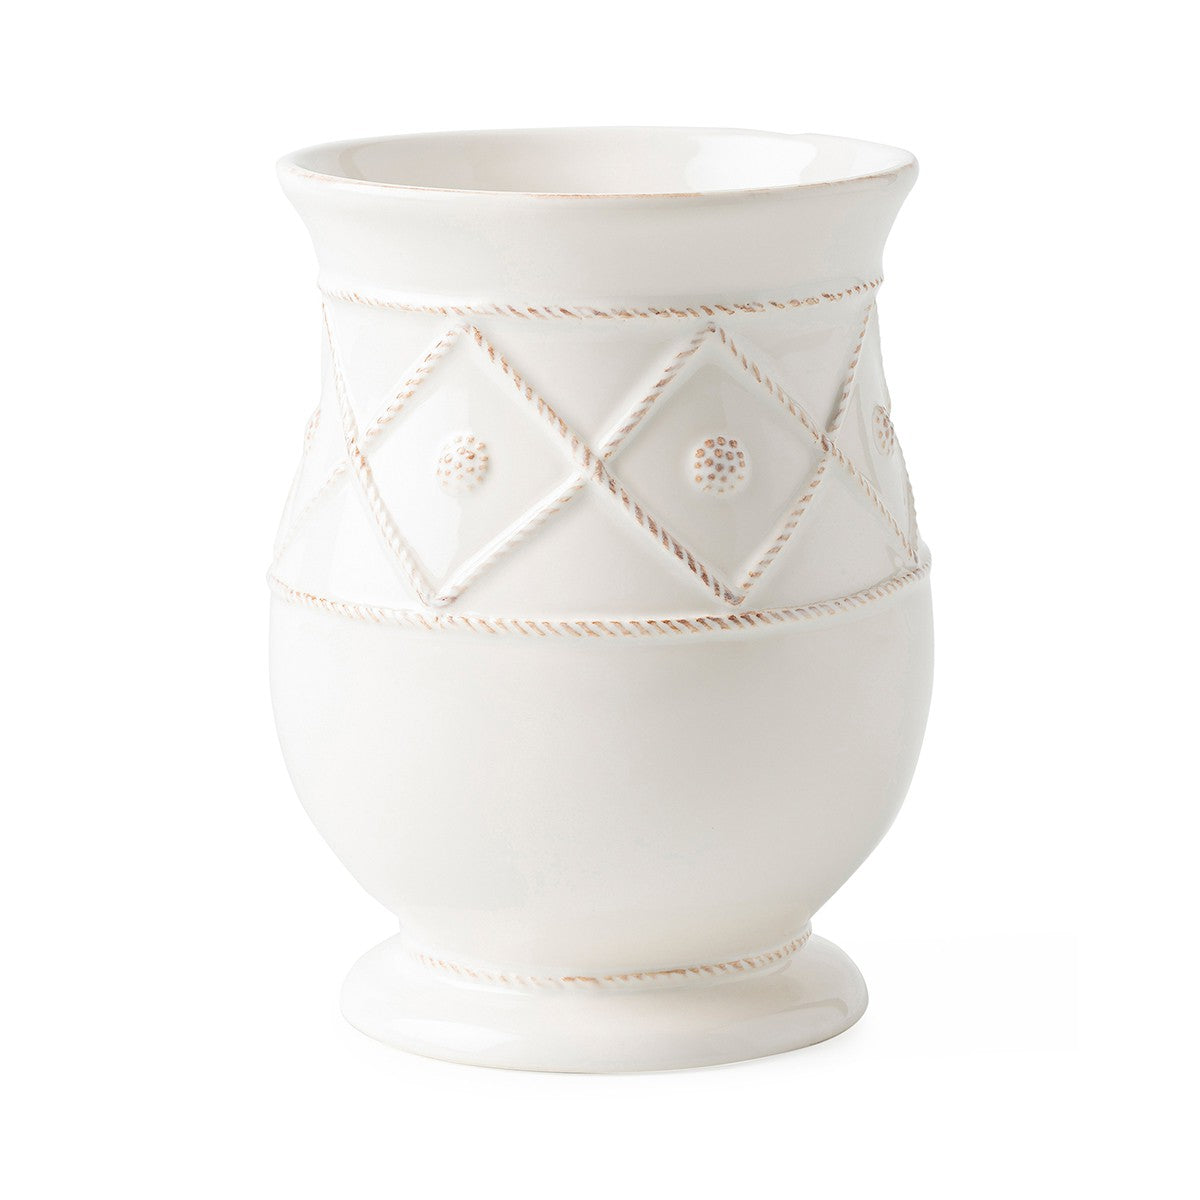 Juliska - Berry & Thread Whitewash Utensil Crock